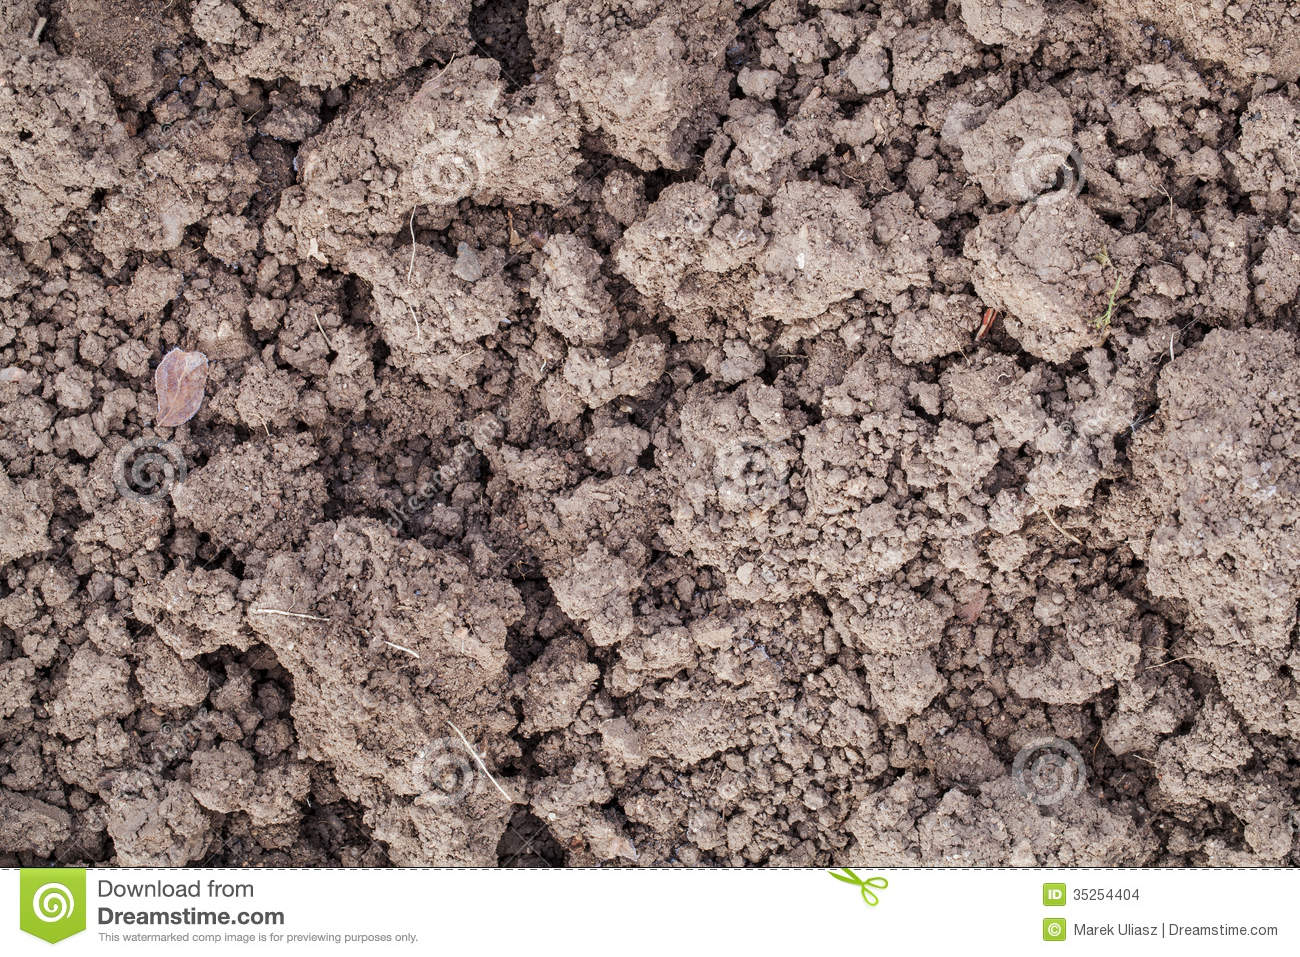 Clay garden soil stock images image 35254404 for Soil content